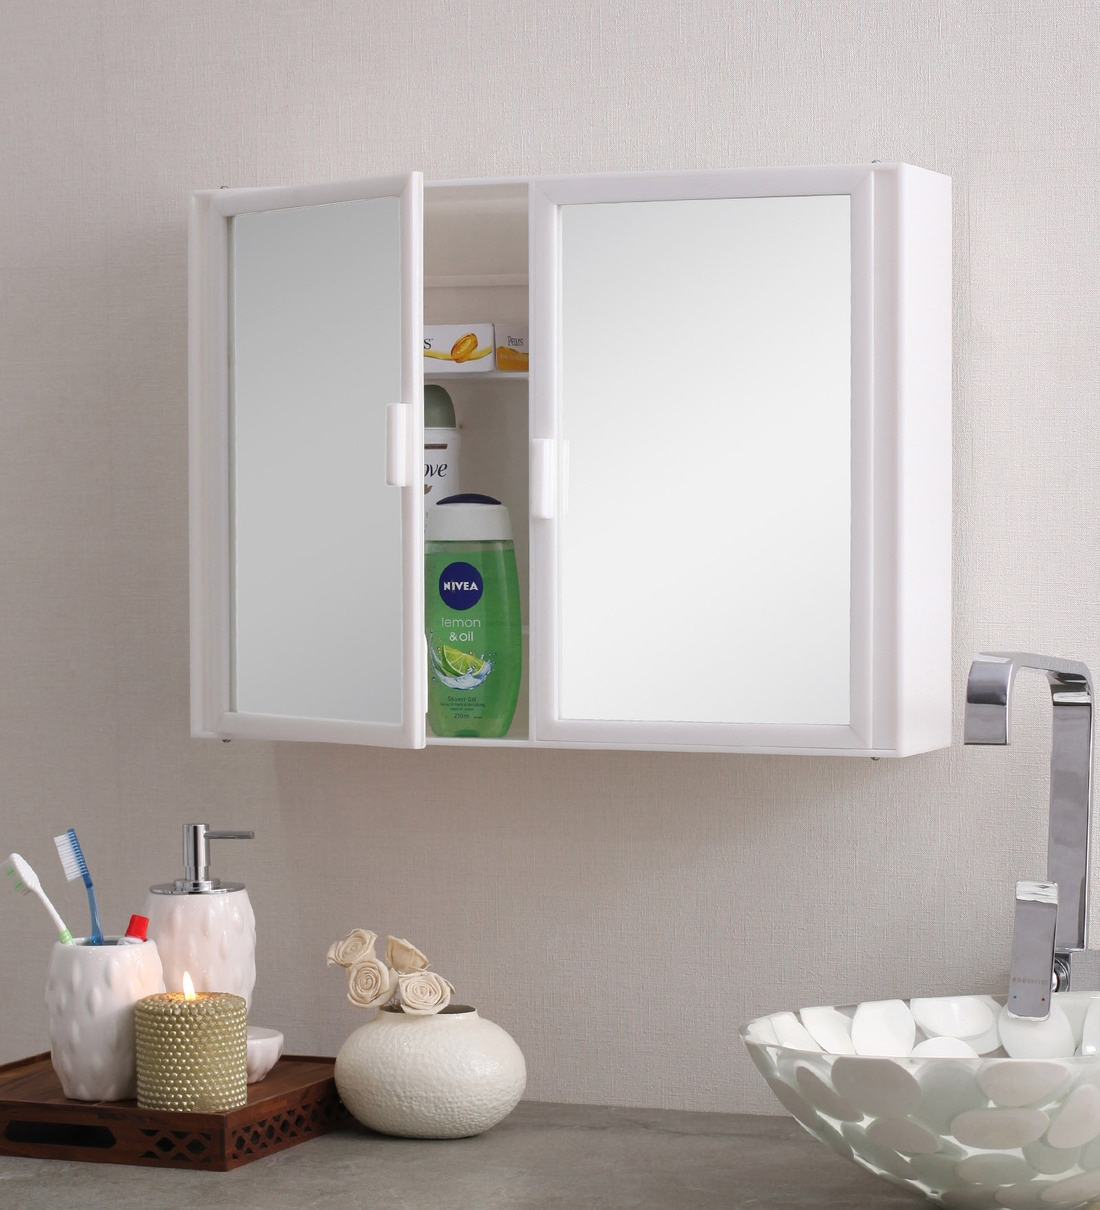 Buy Acrylic White 8 Compartment Bathroom Cabinet L 22 W 4 H 16 Inches By Navrang Online Plastic Cabinets Bathroom Cabinets Discontinued Pepperfry Product